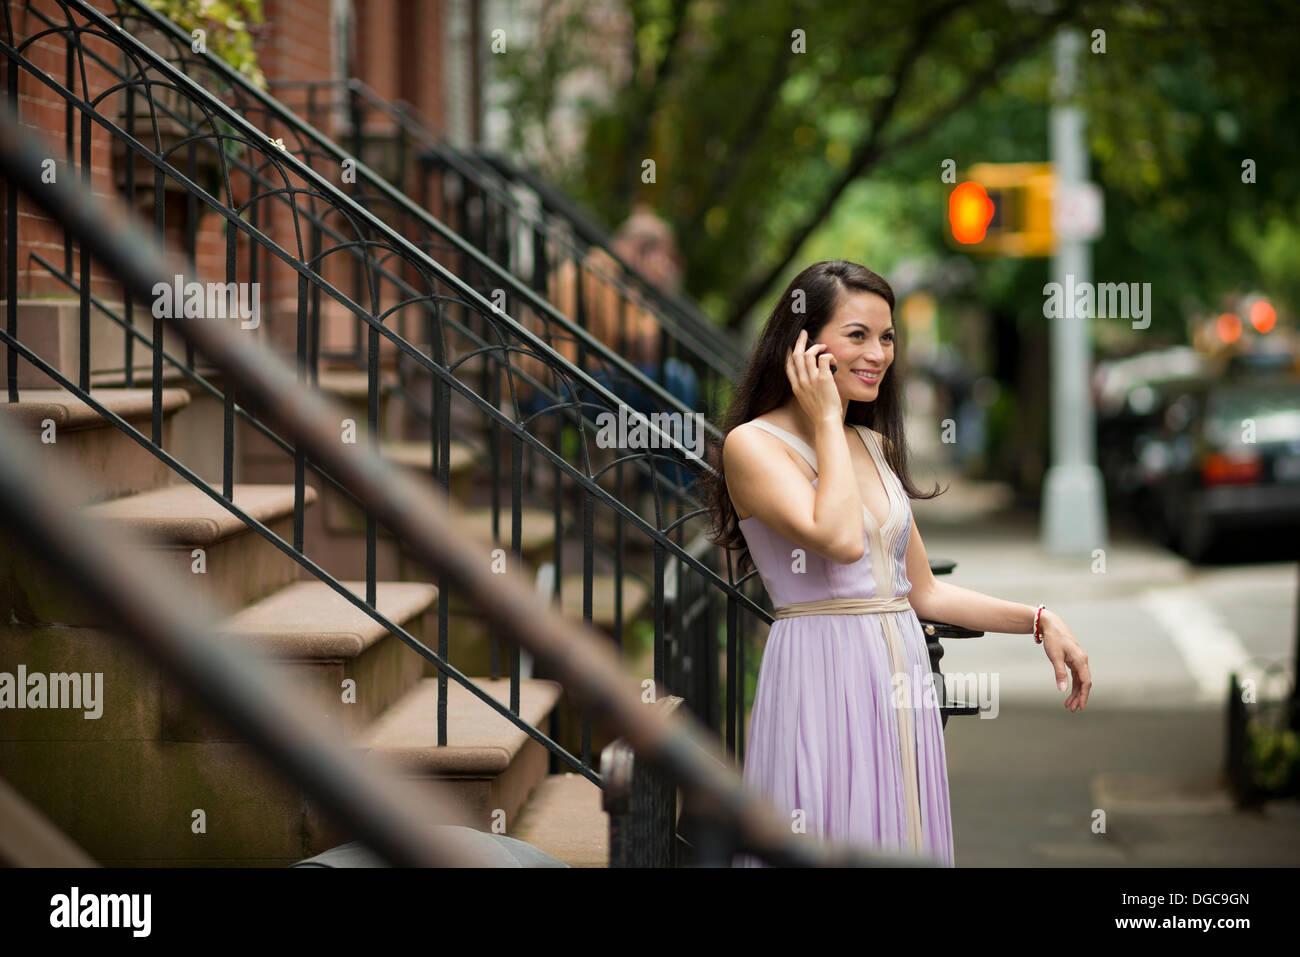 Mid adult women using mobile phone by brownstone buildings in Greenwich, New York - Stock Image